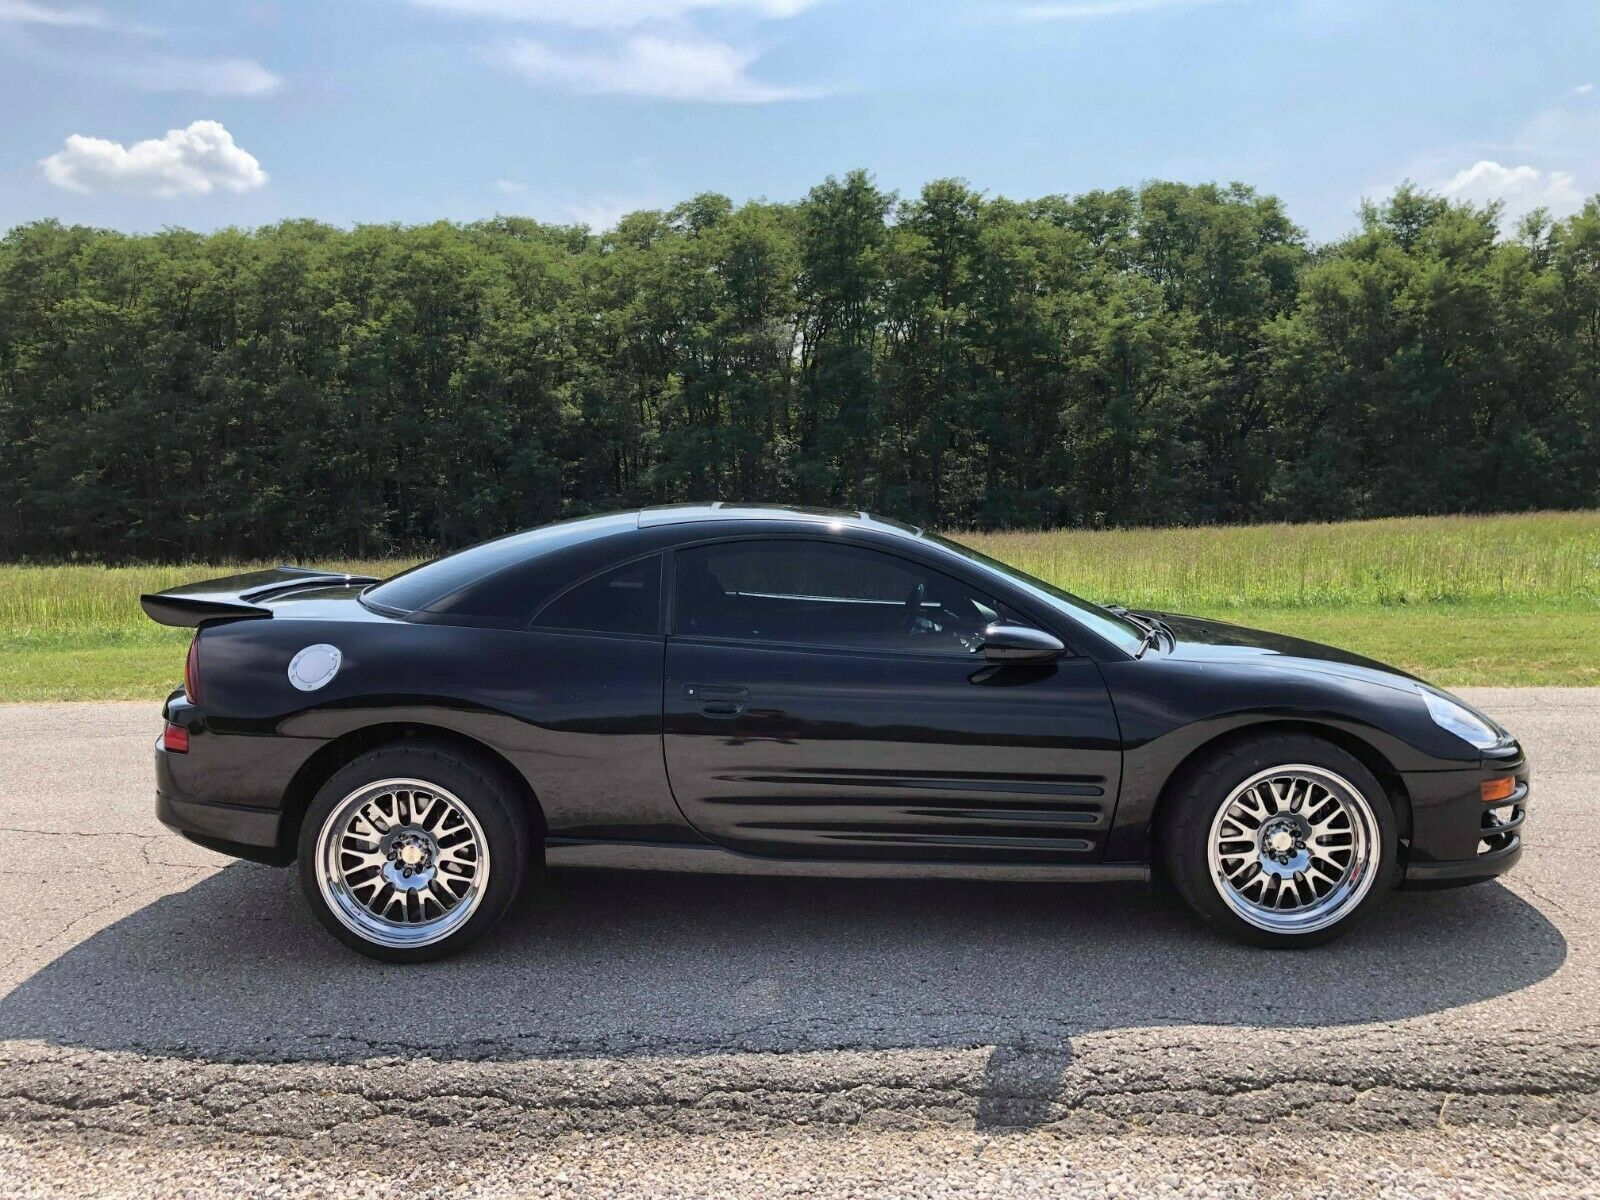 Used 2000 Mitsubishi Eclipse Gsx Treet Drag Car Awd 5 Speed 2 4 Evo Ix Engine 5858 Turbo 630hp 540tq 2020 Is In Stock And For Sale 24carshop Com Mitsubishi Eclipse Mitsubishi Eclipse Gsx Eclipse Gsx